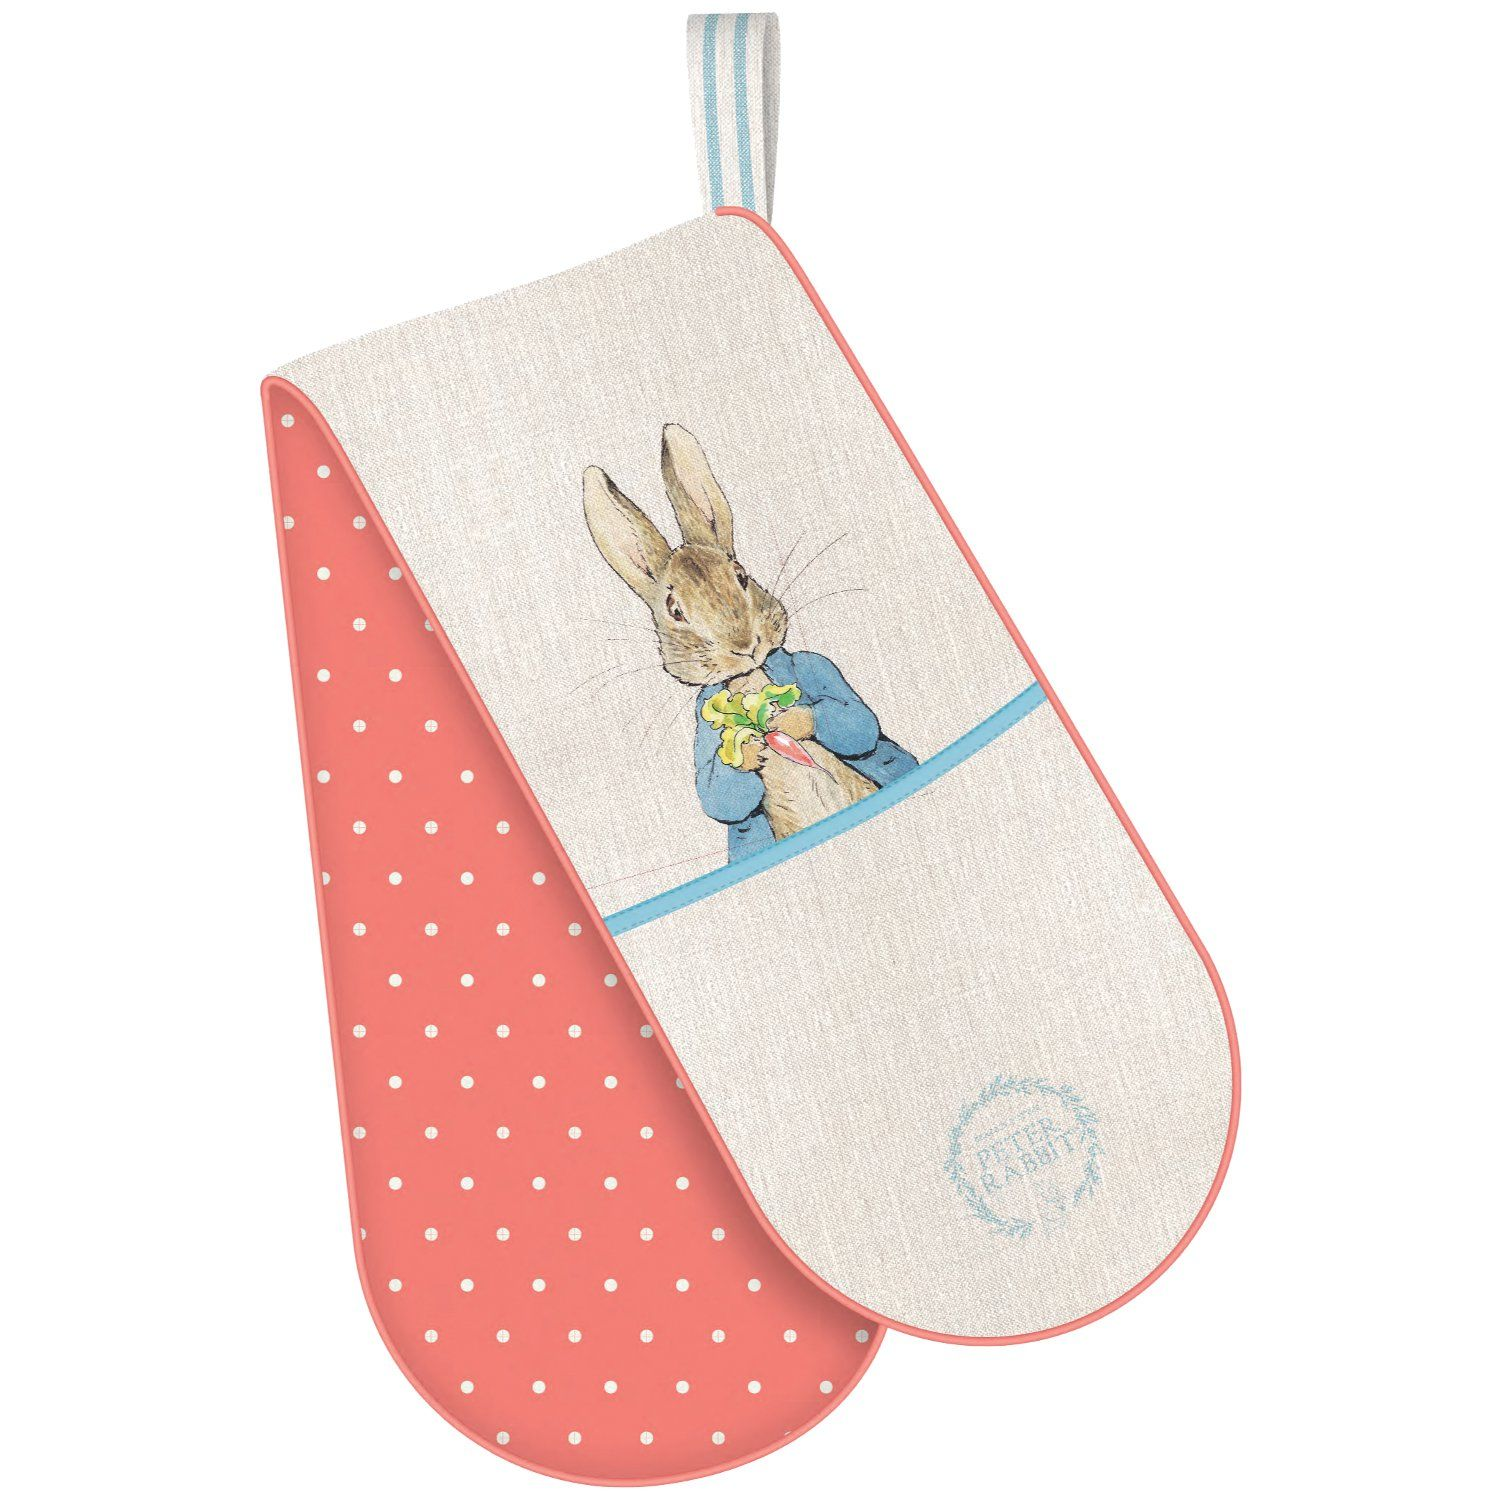 Peter Rabbit Peter Rabbit Classic Double Oven Glove